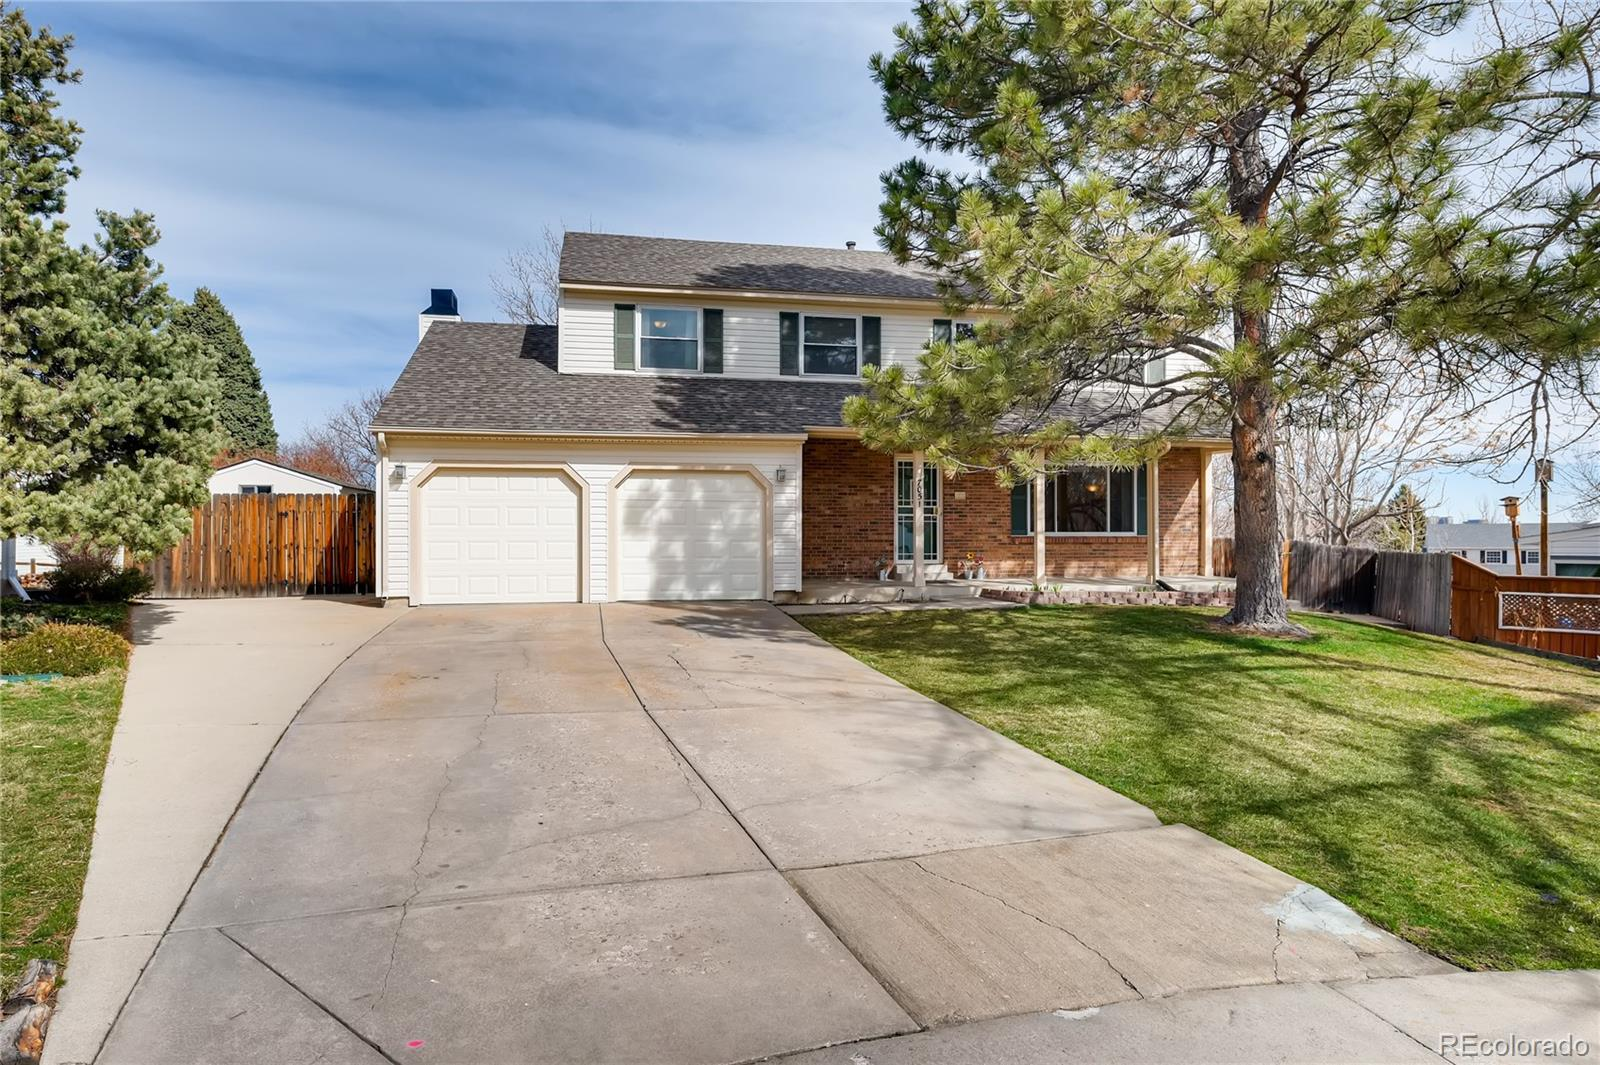 MLS# 4427709 - 1 - 7051 S Glencoe Court, Centennial, CO 80122